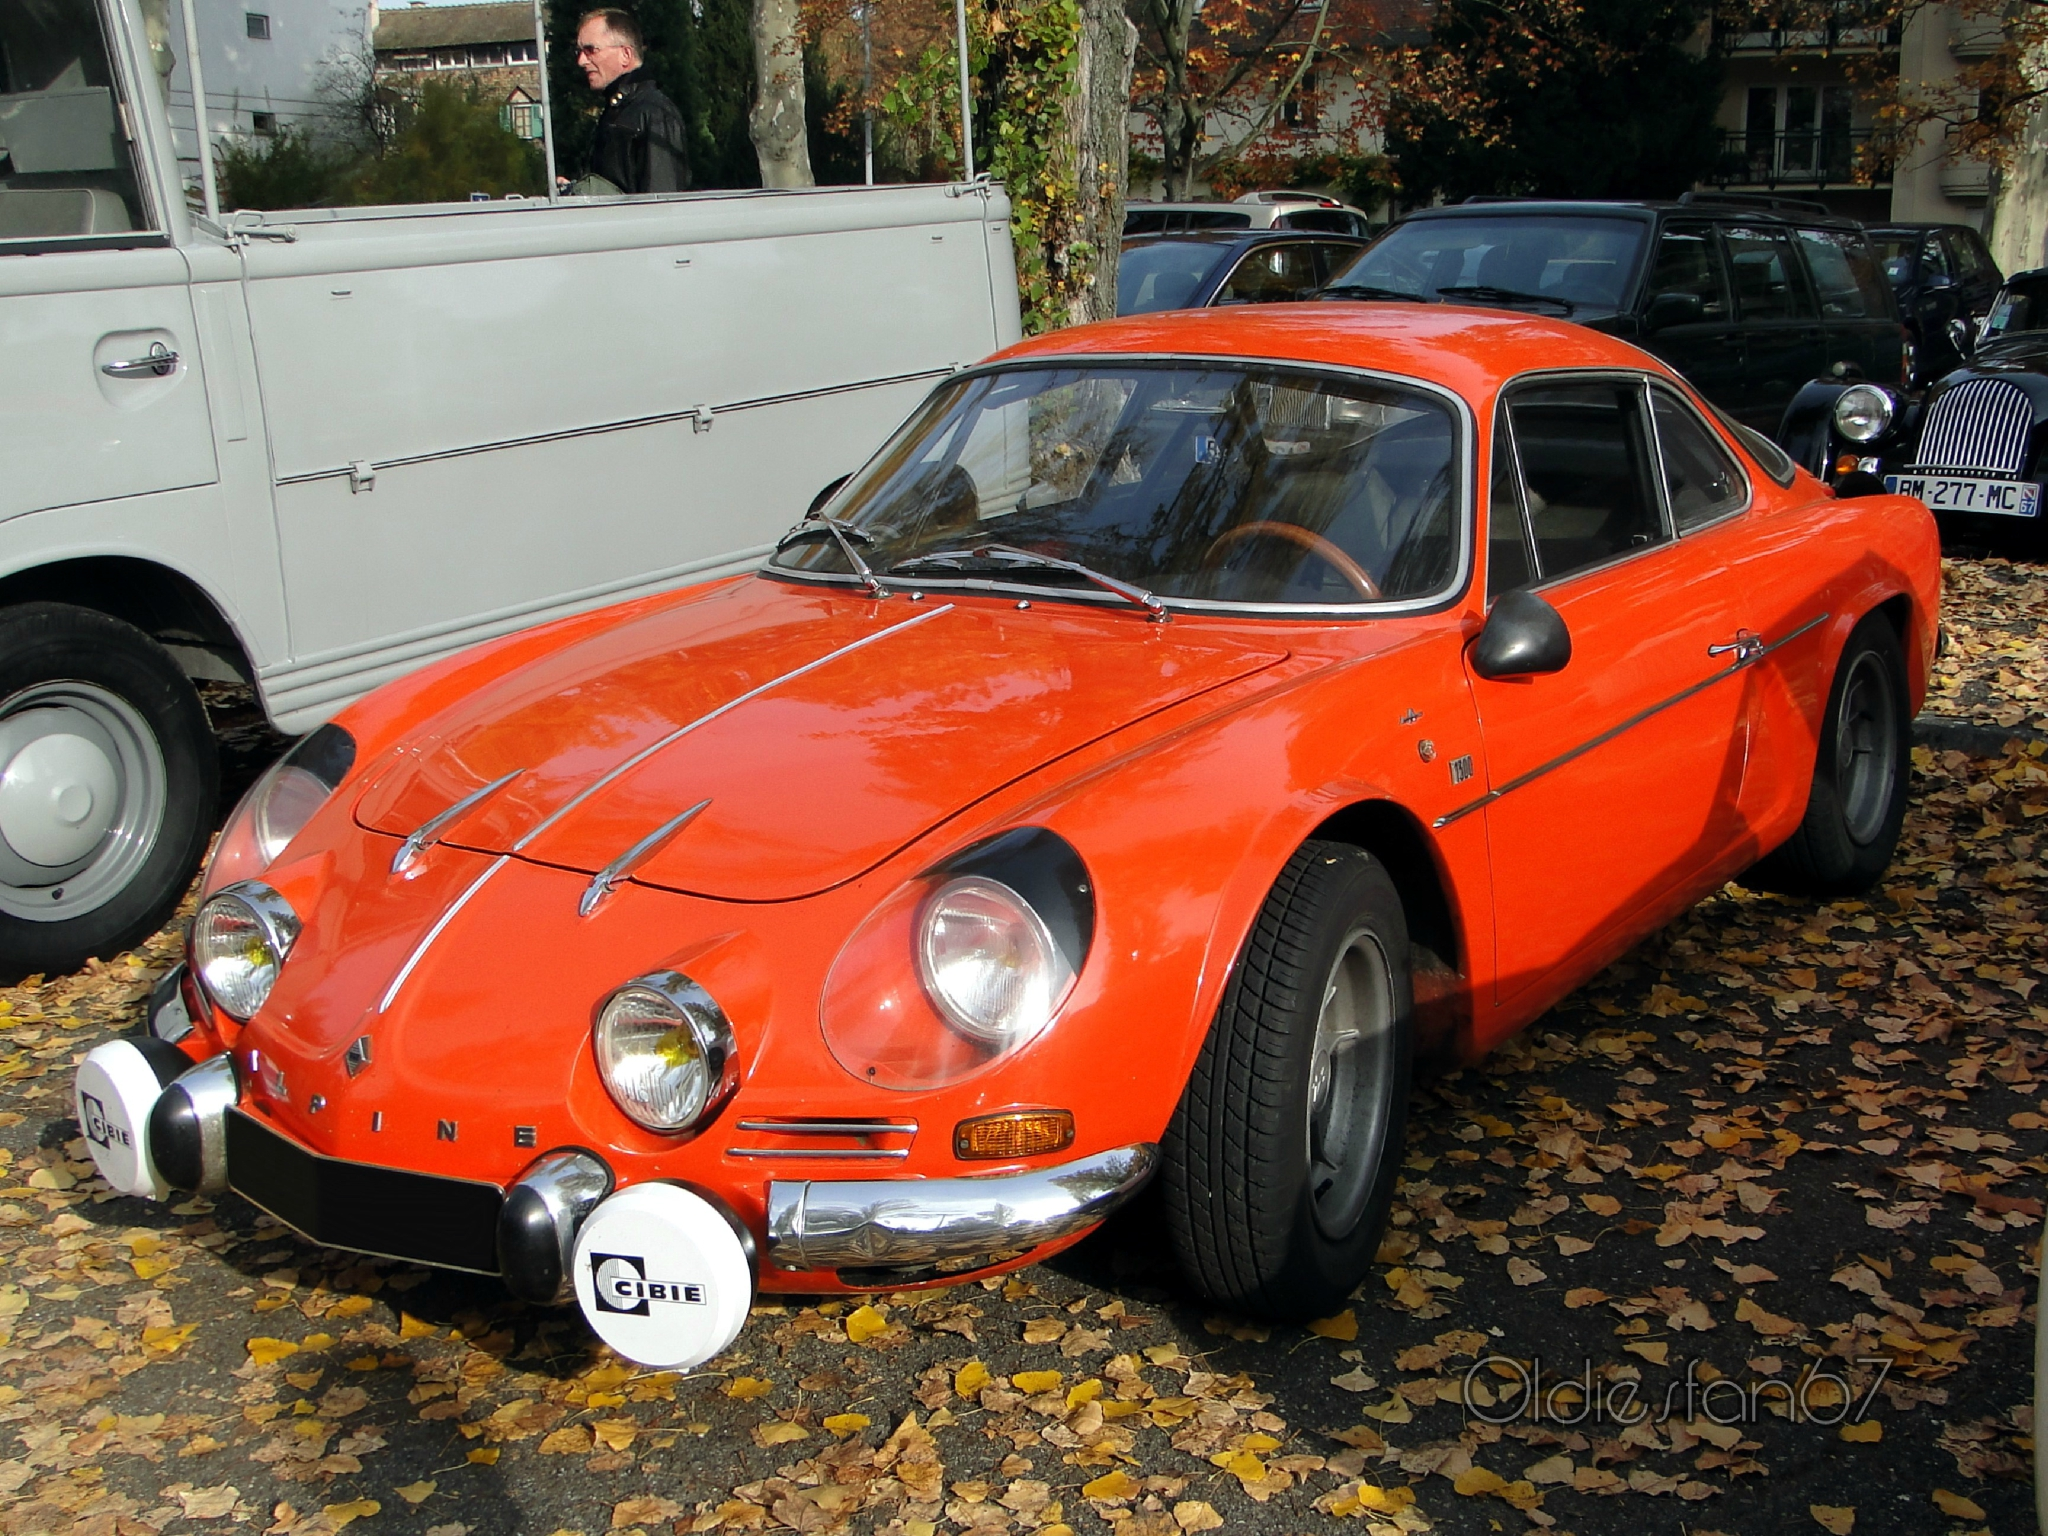 alpine renault a110 tous les messages sur alpine renault a110 oldiesfan67 mon blog auto. Black Bedroom Furniture Sets. Home Design Ideas